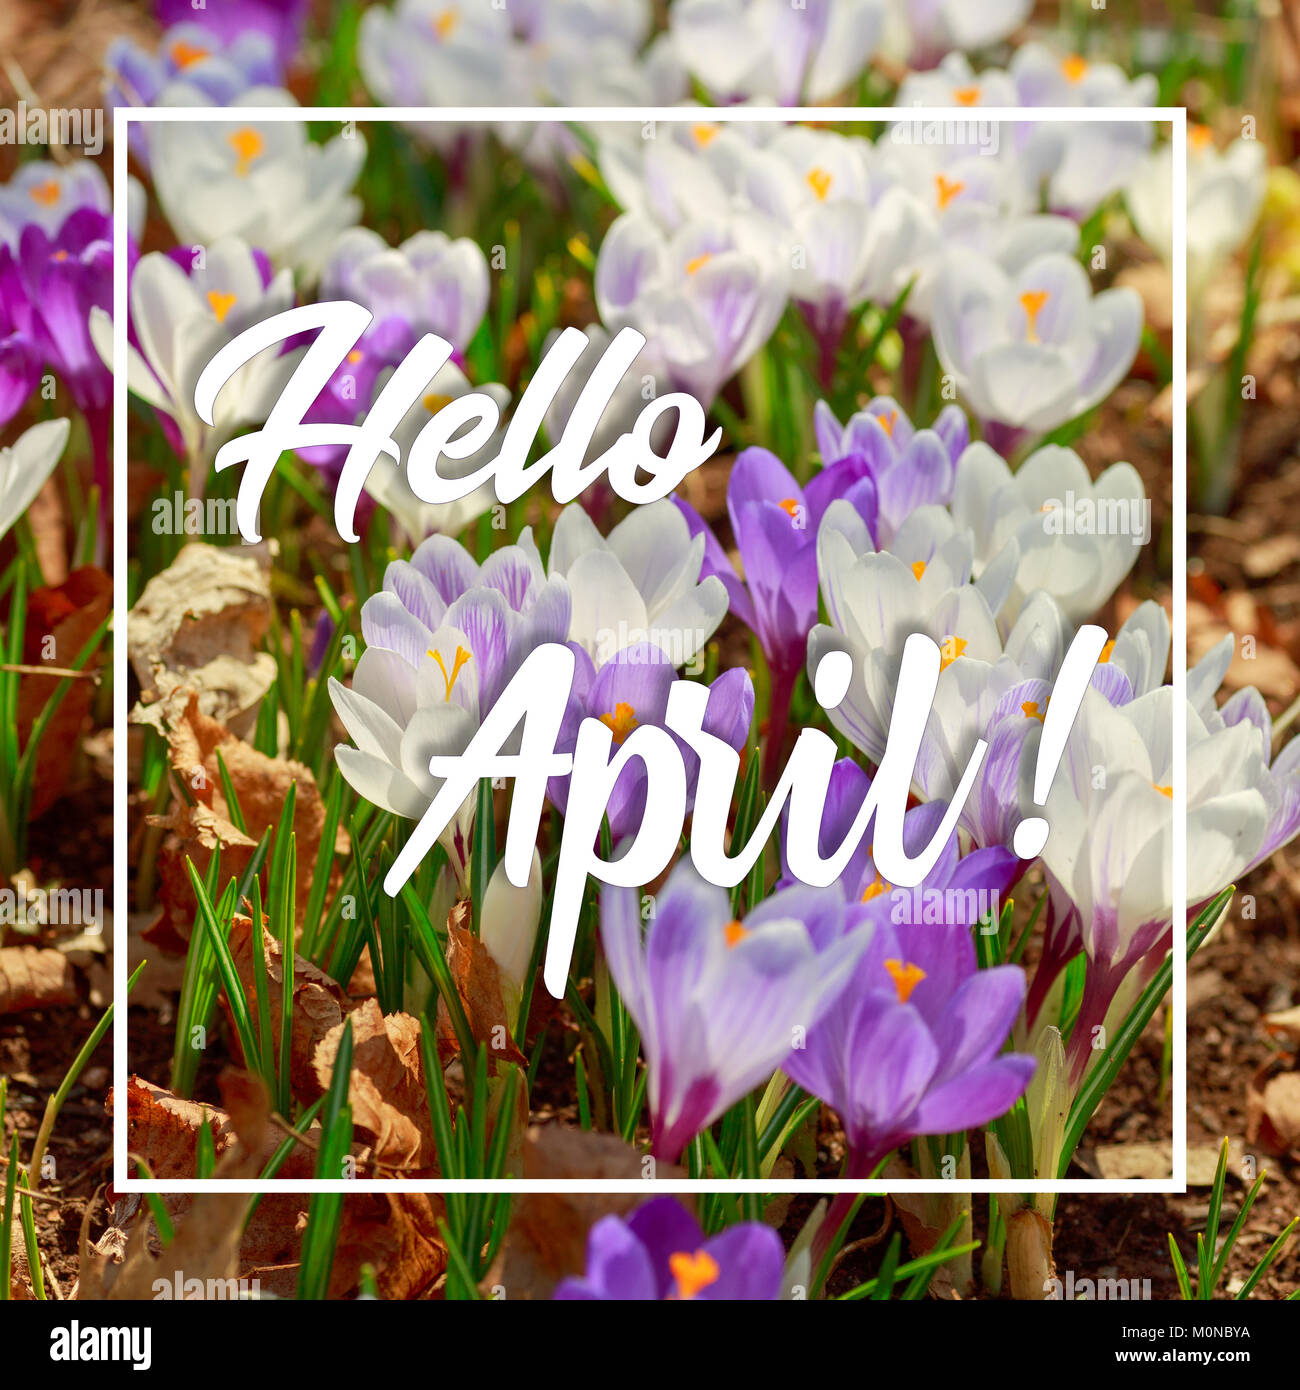 Inspirational quote 'Hello April' with crocus flowers. - Stock Image